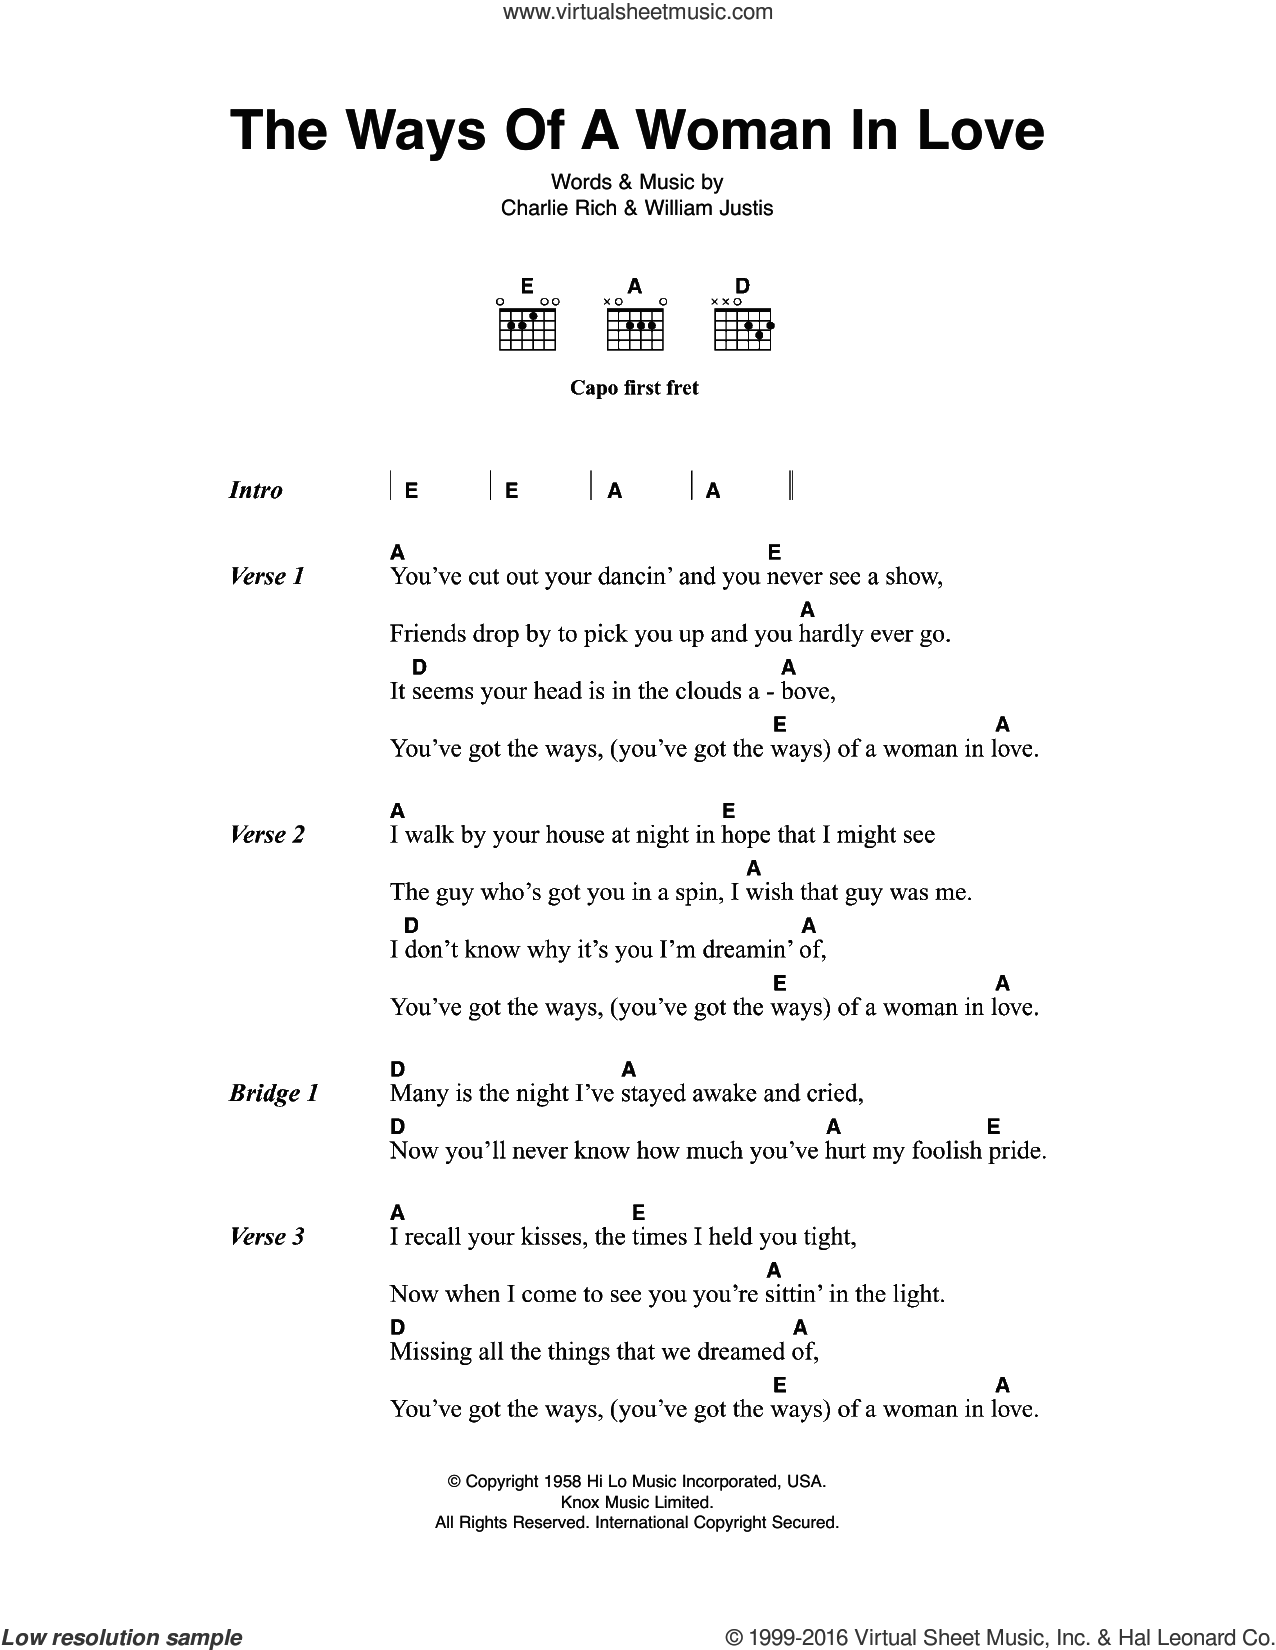 The Ways Of A Woman In Love sheet music for guitar (chords) by Johnny Cash, Charlie Rich and William Justis, intermediate skill level